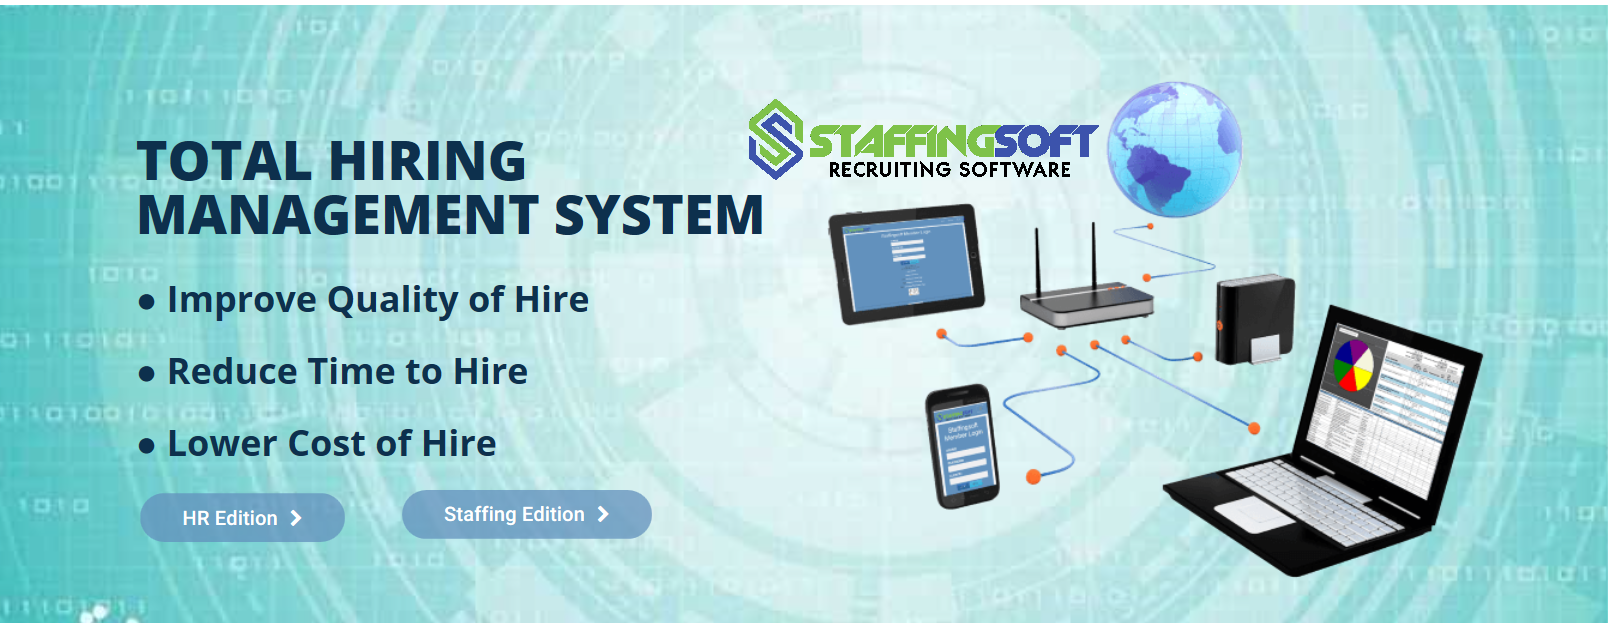 StaffingSoft – Recruiting Software